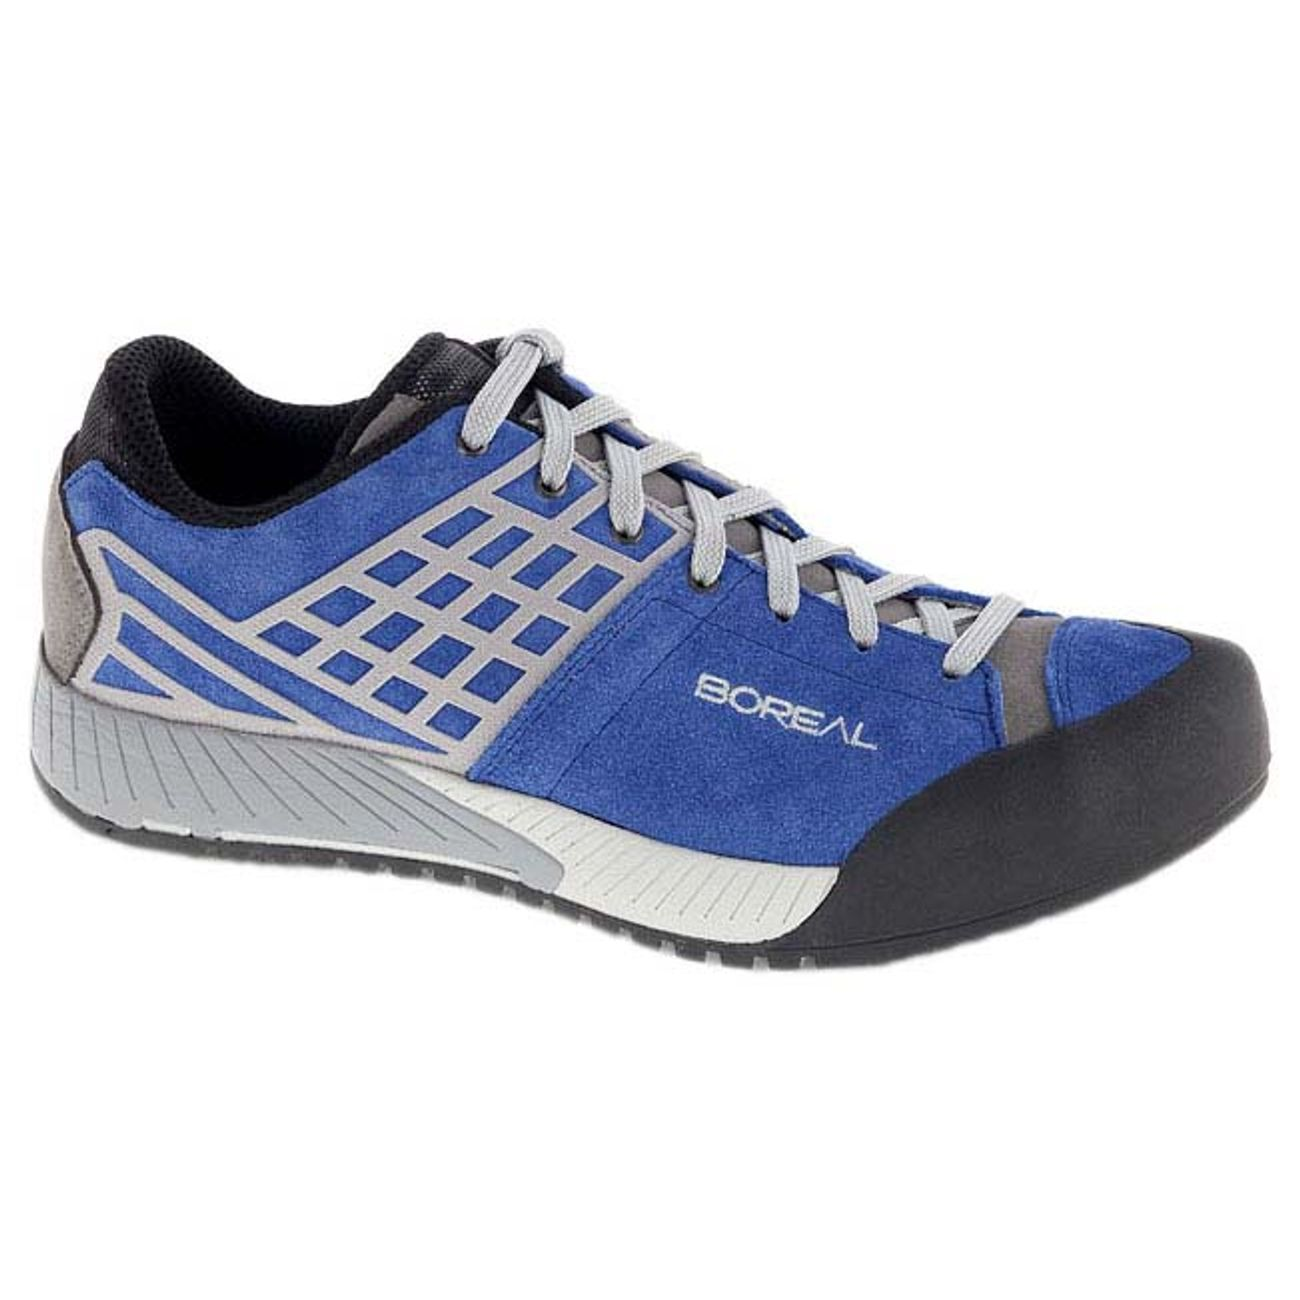 Chaussures Boreal bleues homme ApHwVUCpA